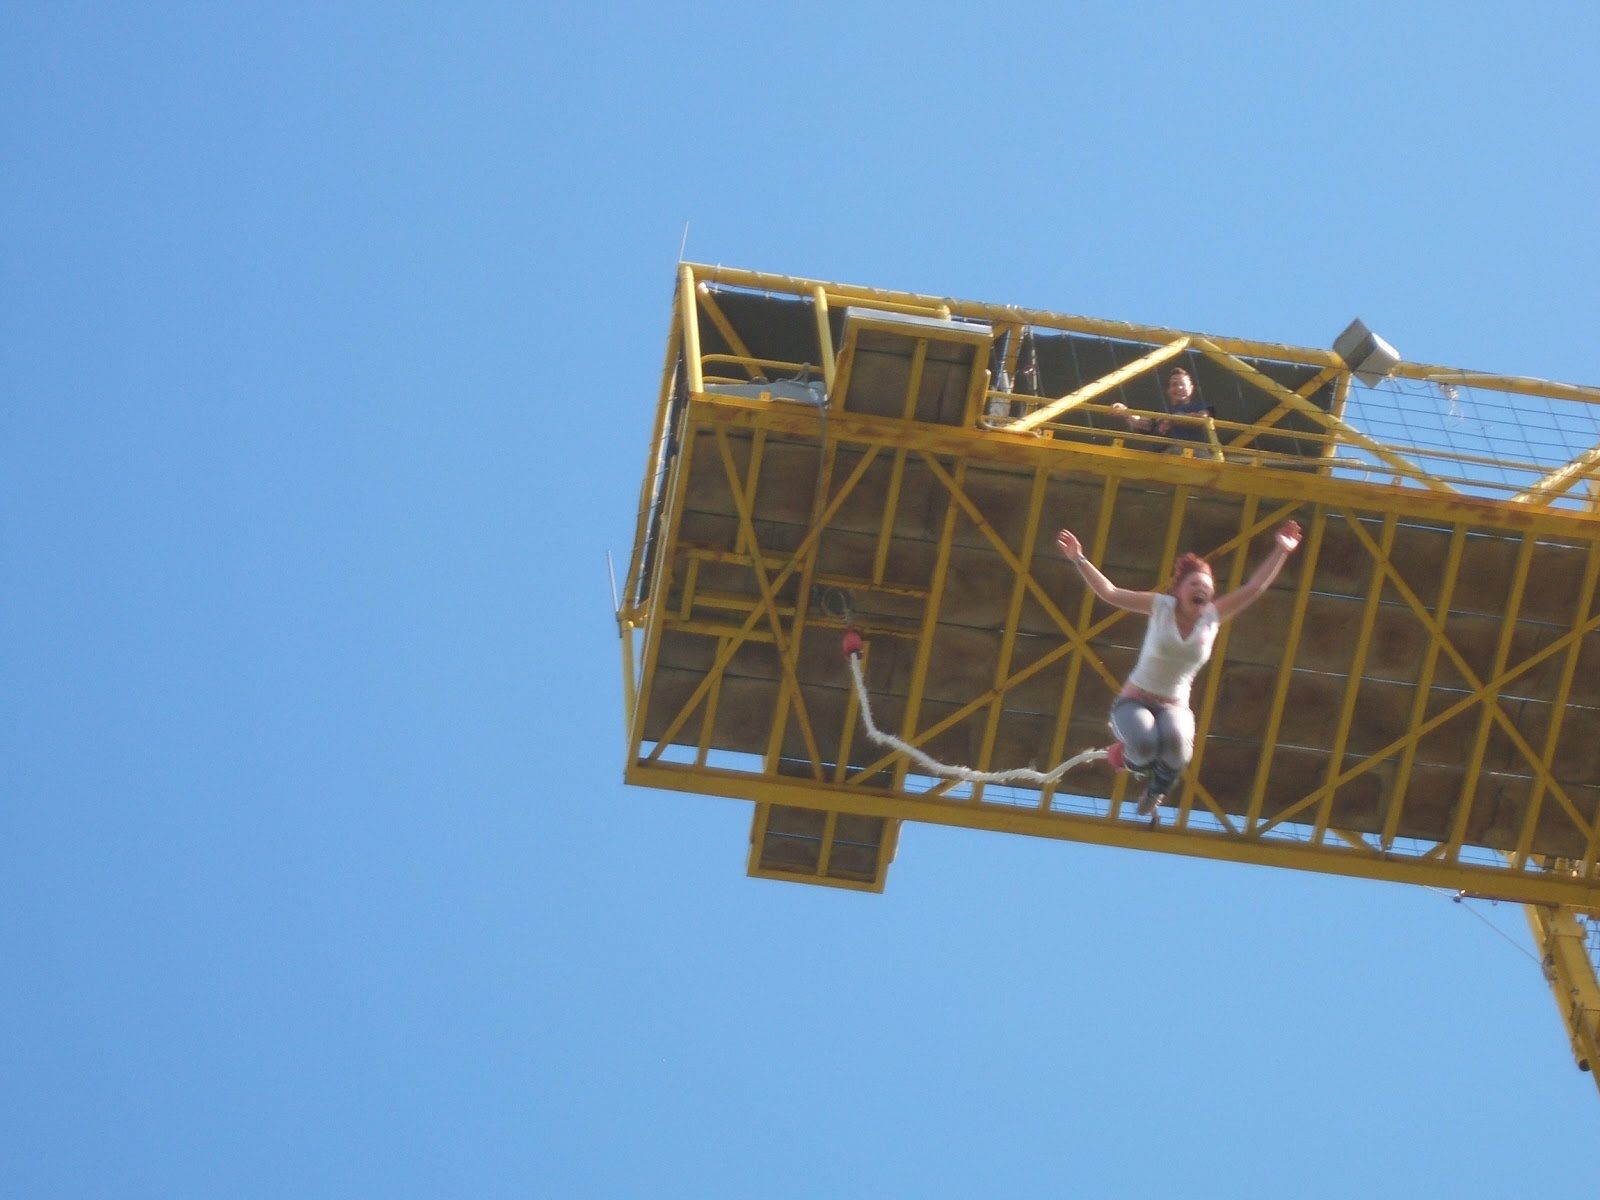 What is it like to do a bungee jump?